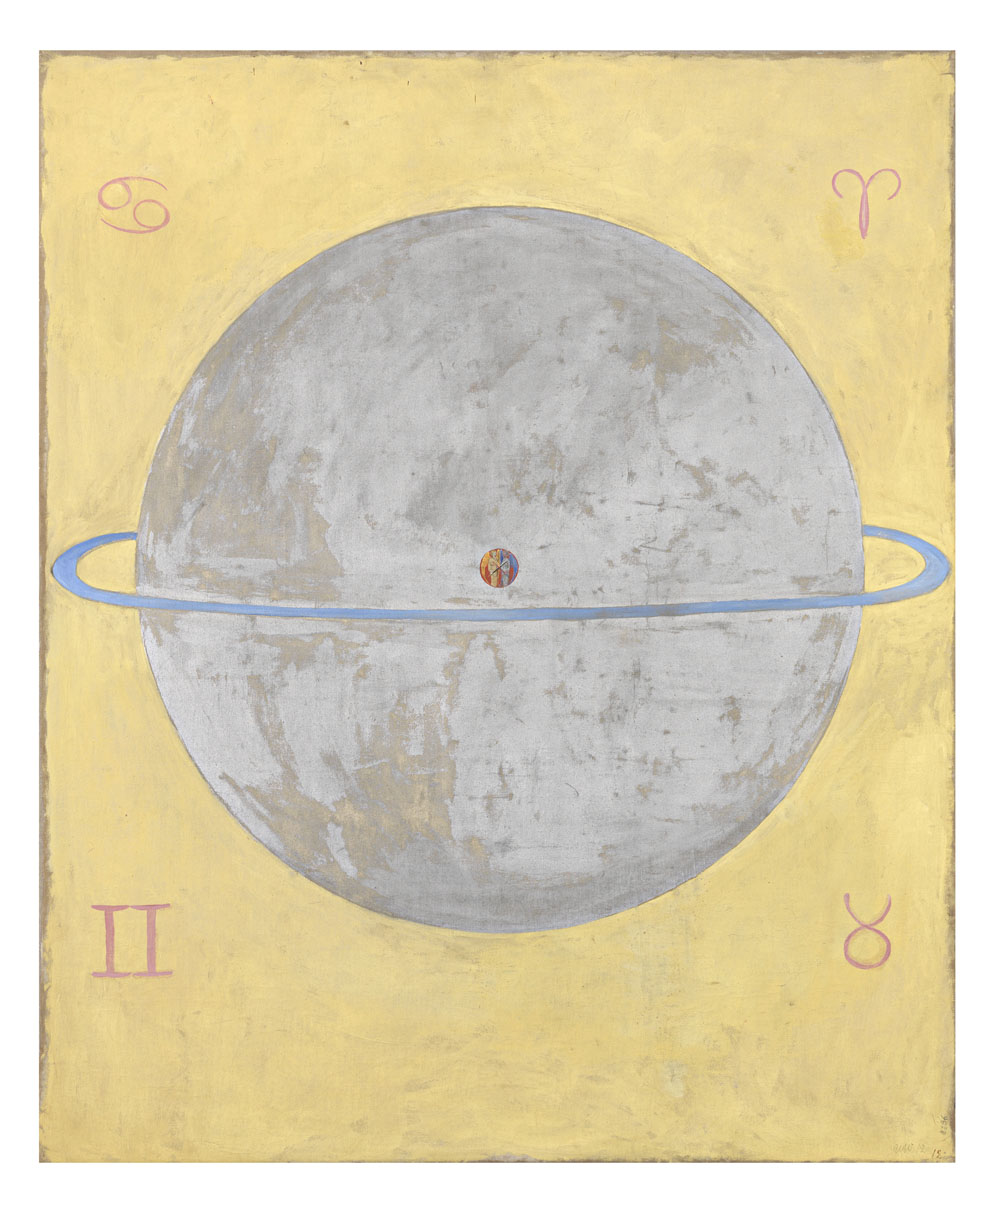 Hilma af Klint The Dove, no. 12, Series UW, 1915